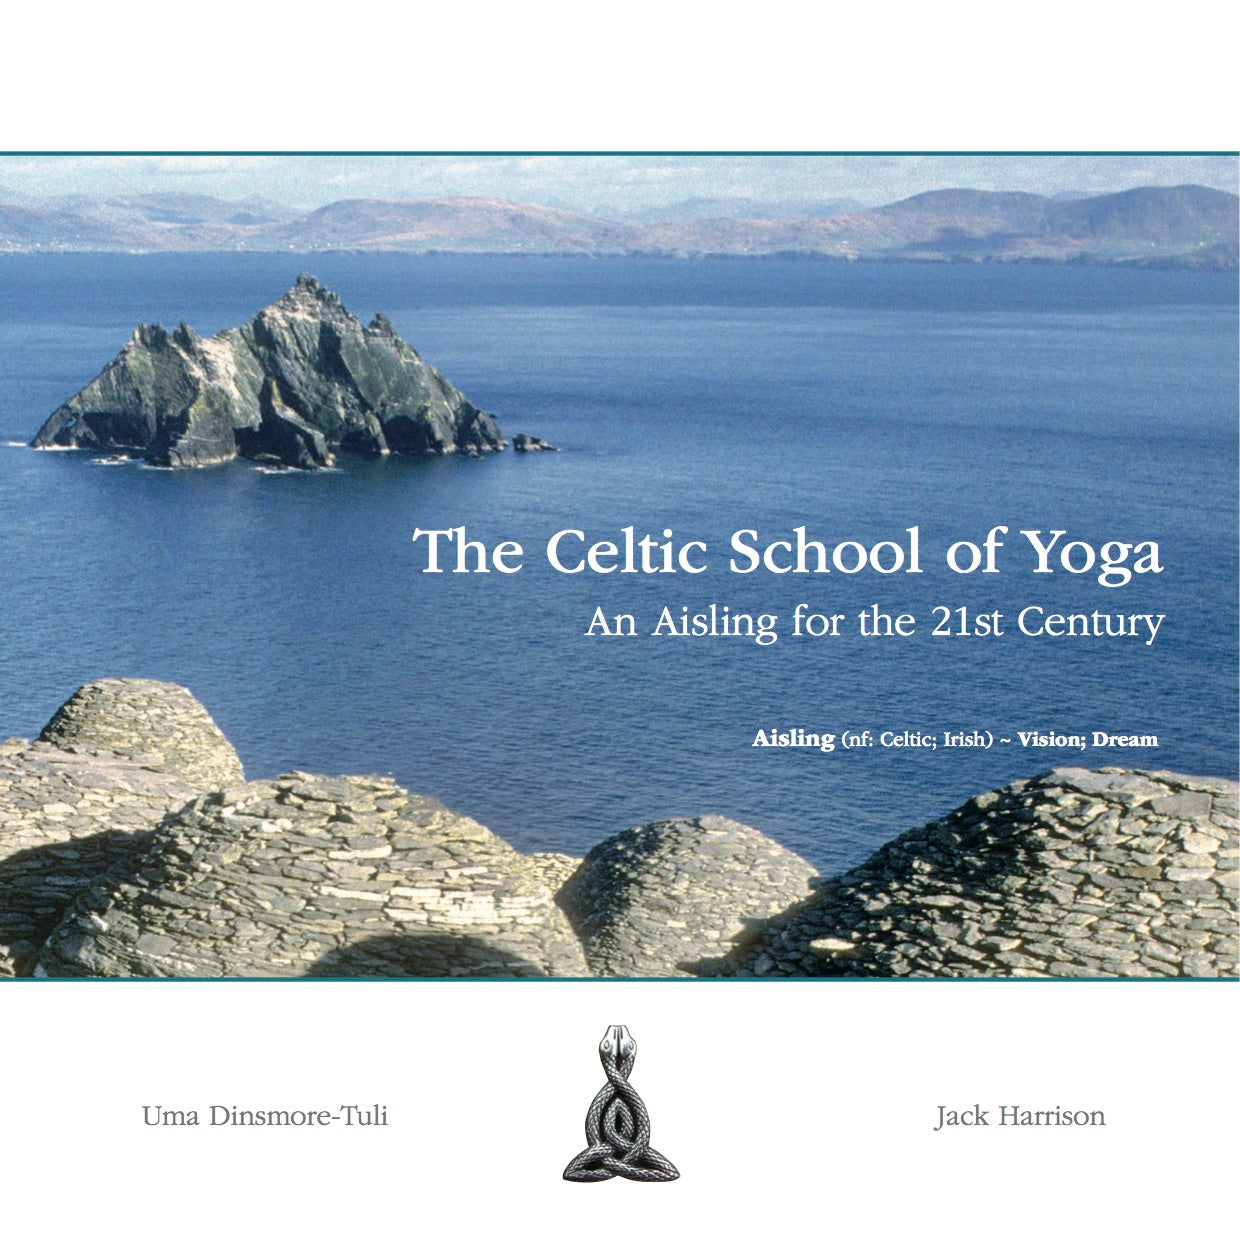 The Celtic School of Yoga - Uma Dinsmore-Tuli and Jack Harrison